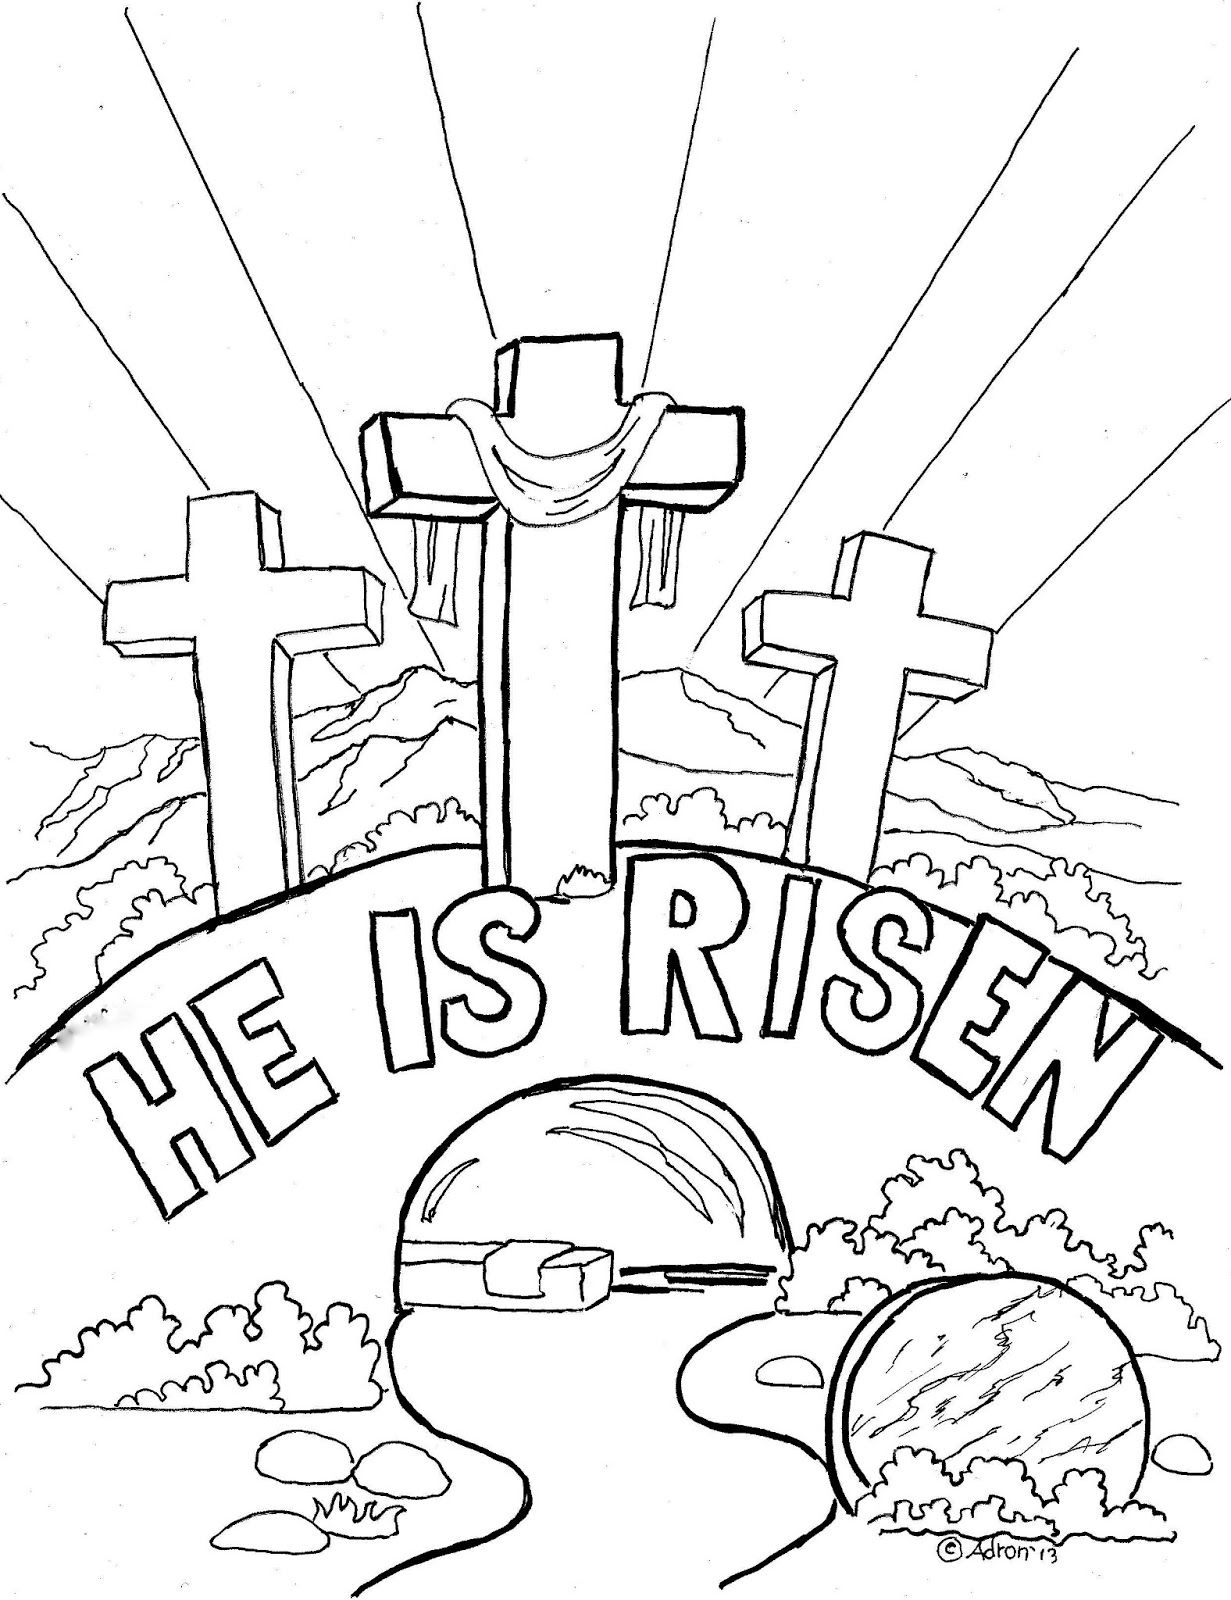 Free coloring pages christian - Church Easter Coloring Pages Easter Coloring Pages For Kids Easter Coloring Pages Religious Easter Coloring Pages Free And Fresh Coloring Pictures